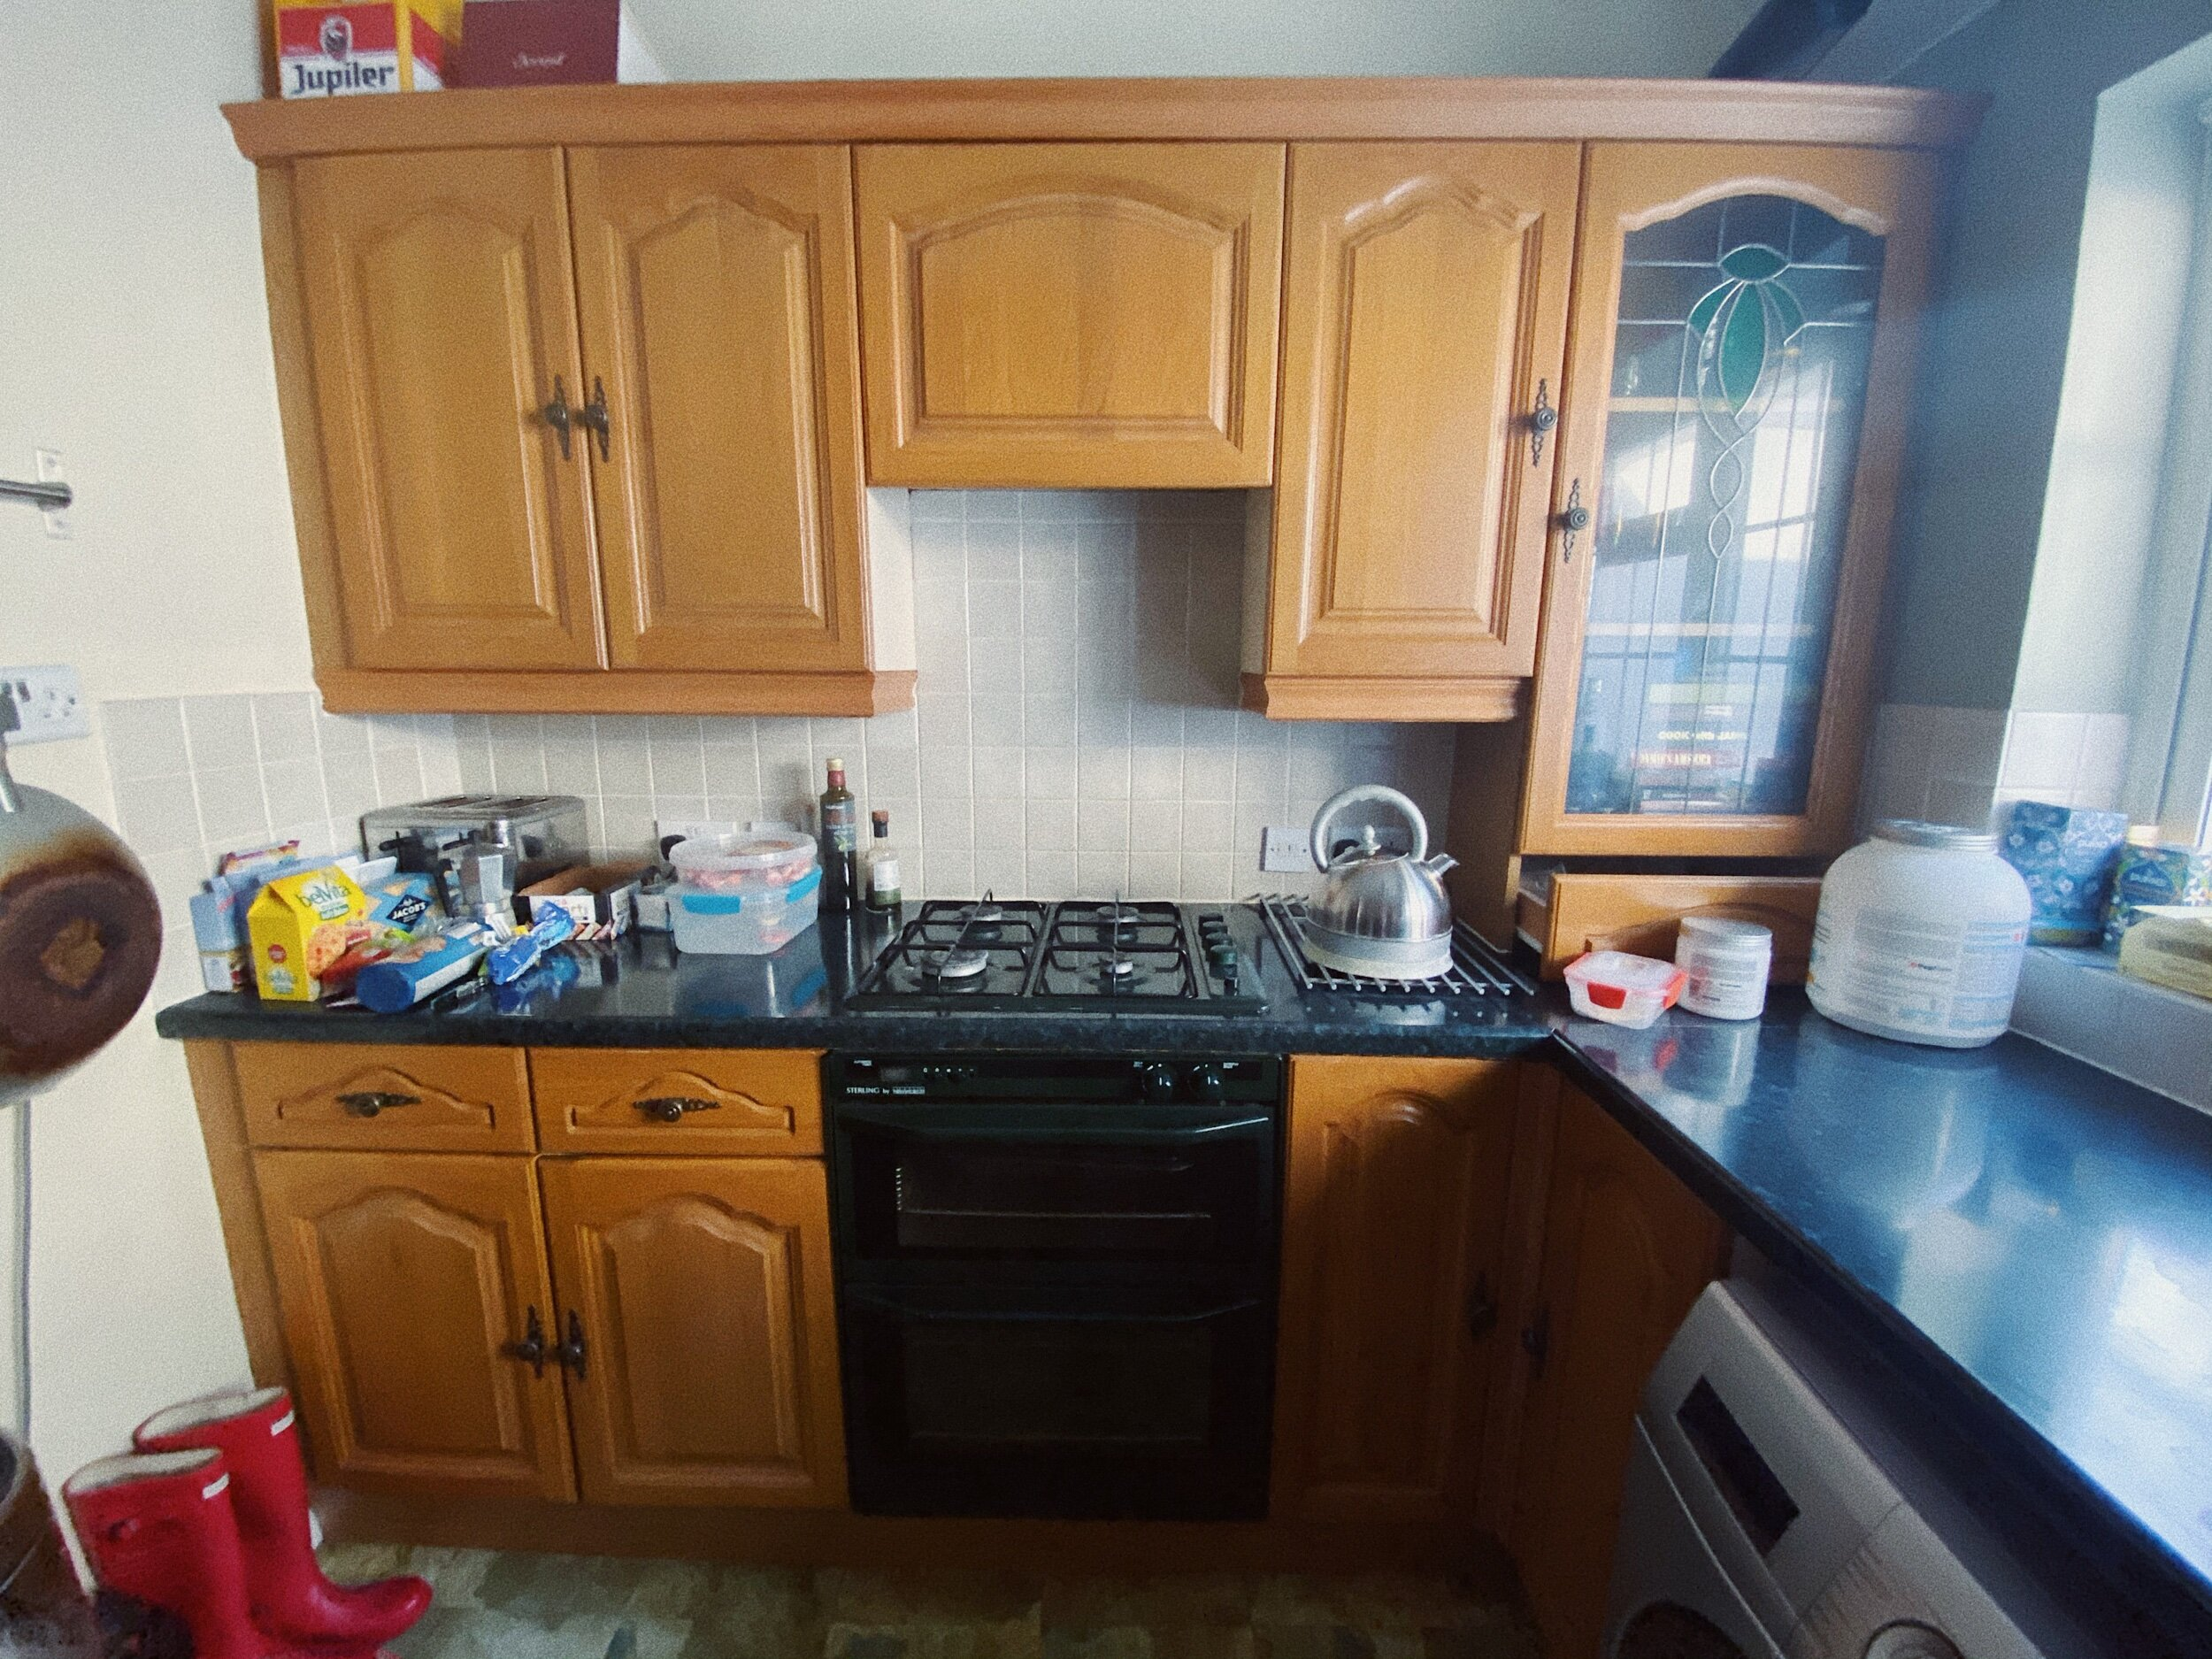 Before And After A Small Kitchen Makeover On A Budget In Collaboration With Valspar Paint Uk For The Floor And More Ad Gifted Items Lucie Loves Uk Lifestyle Blog